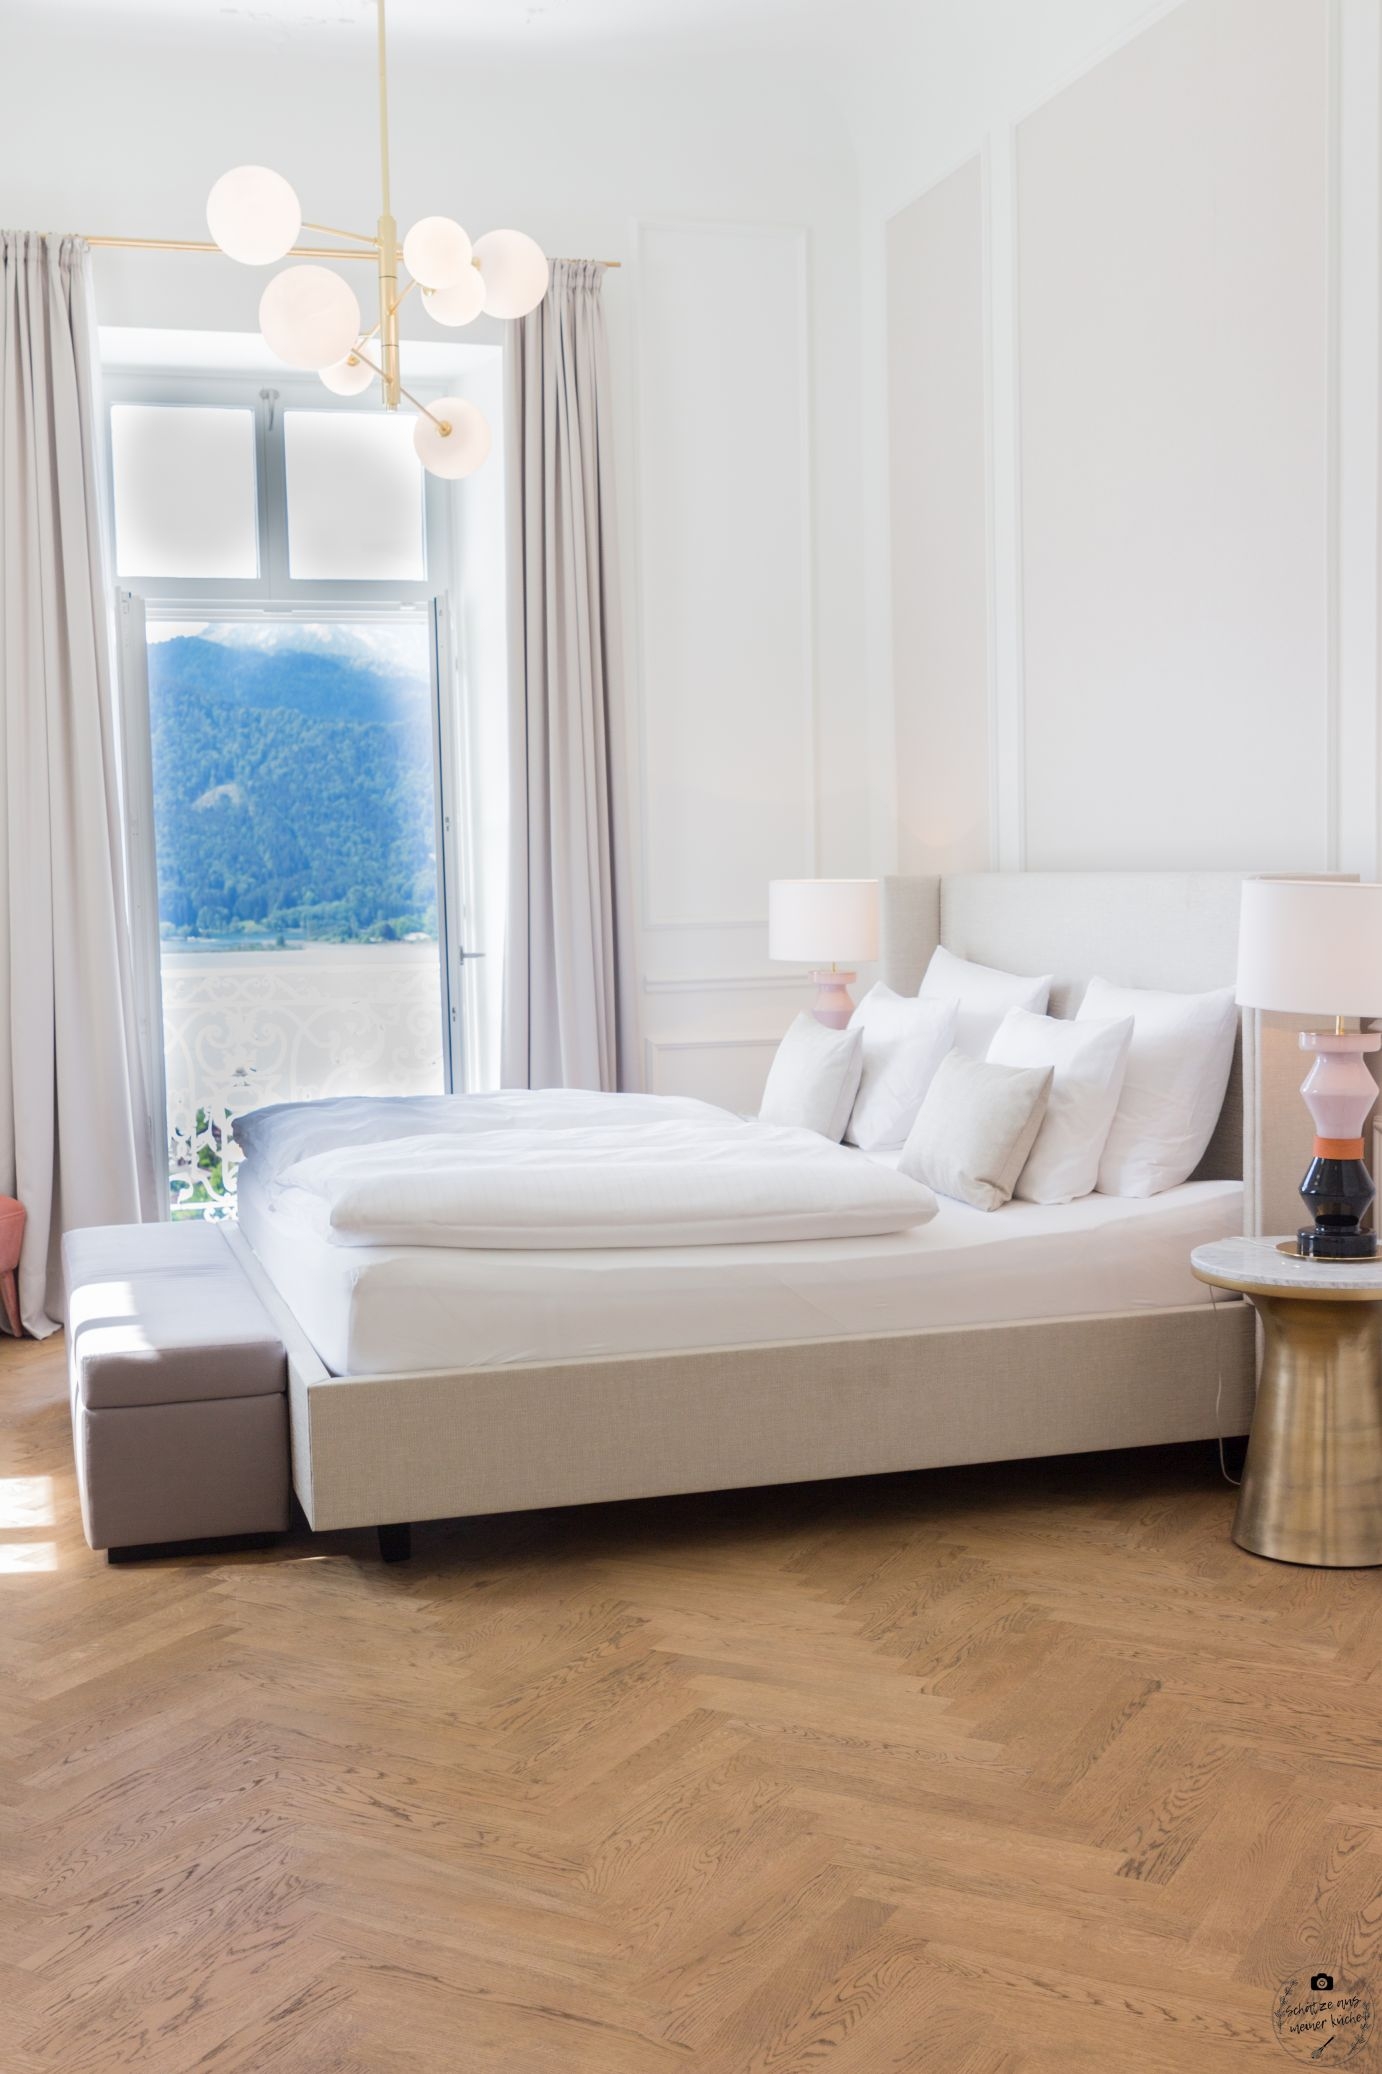 DAS TEGERNSEE Deluxe Suite Lady